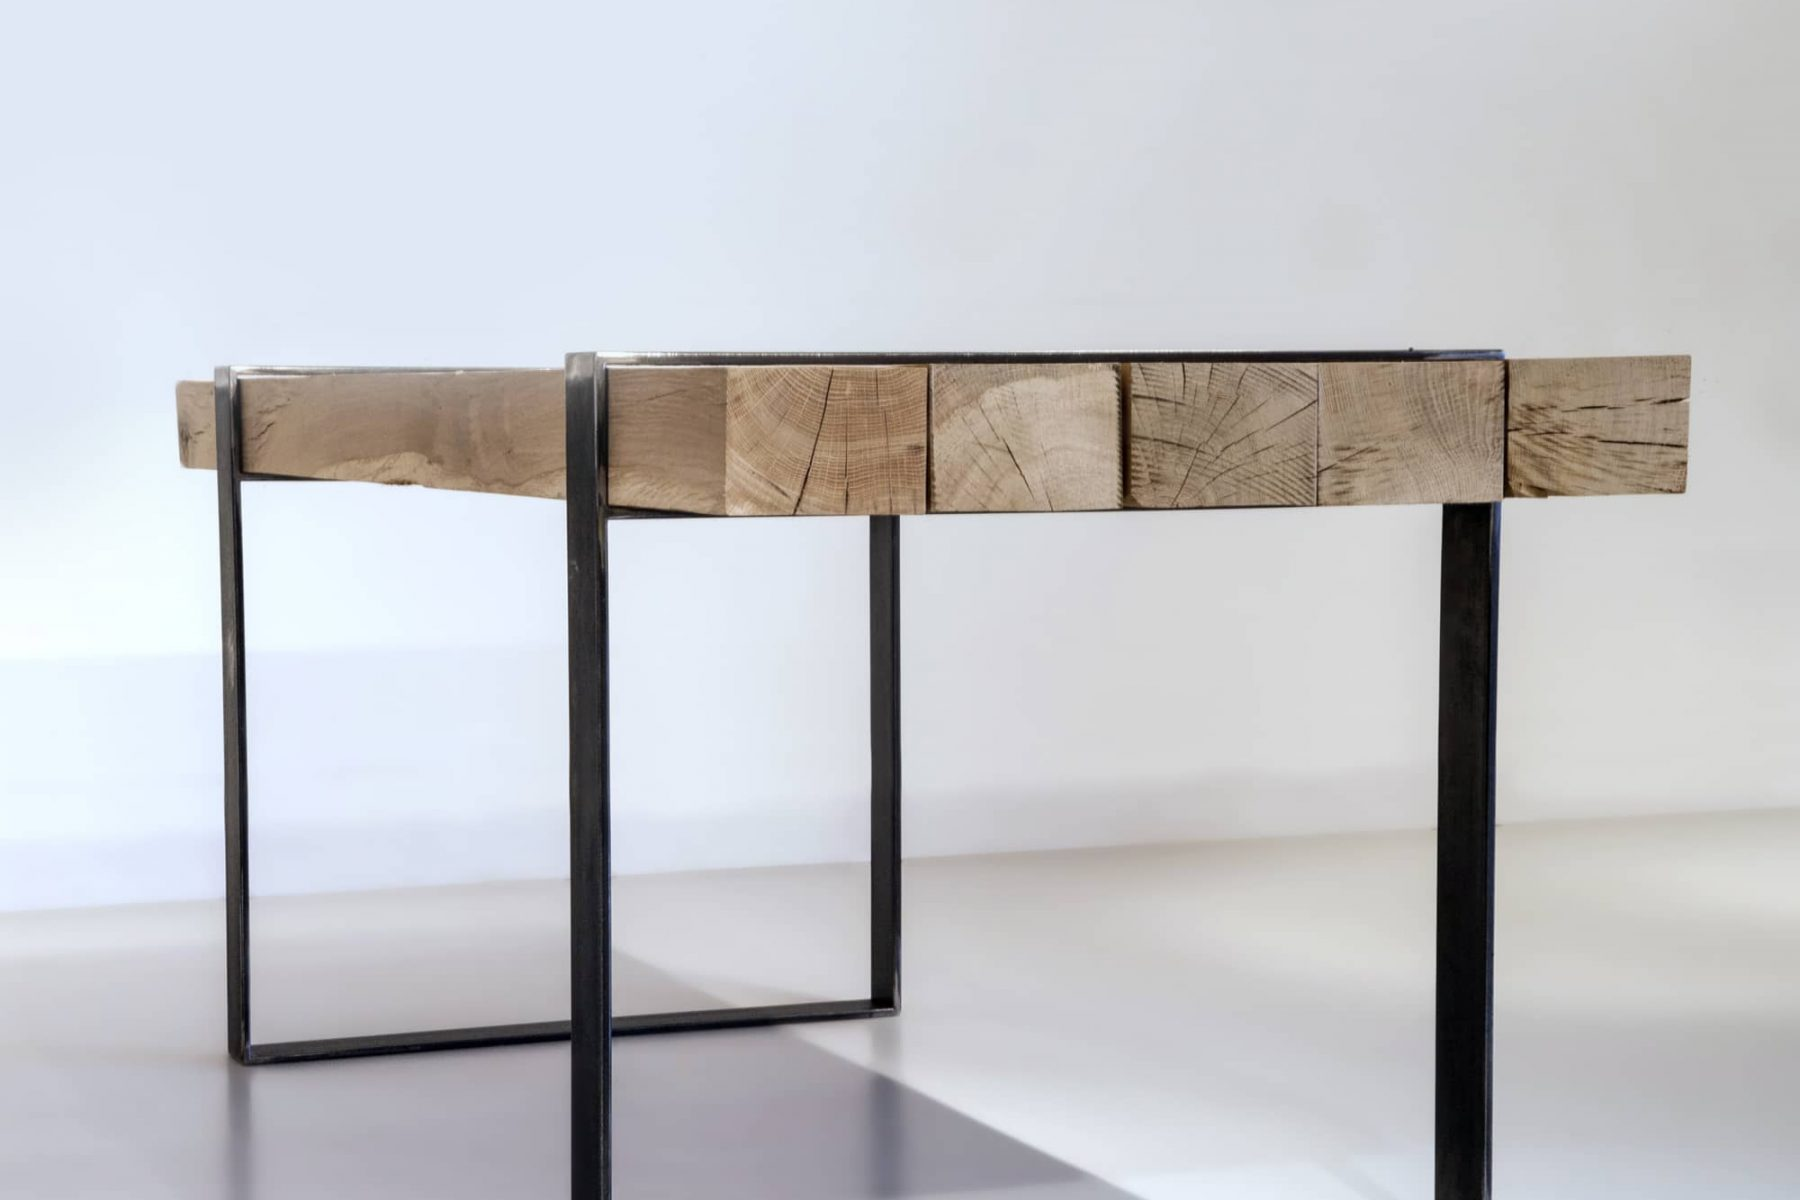 Rustic wooden table with metal legs